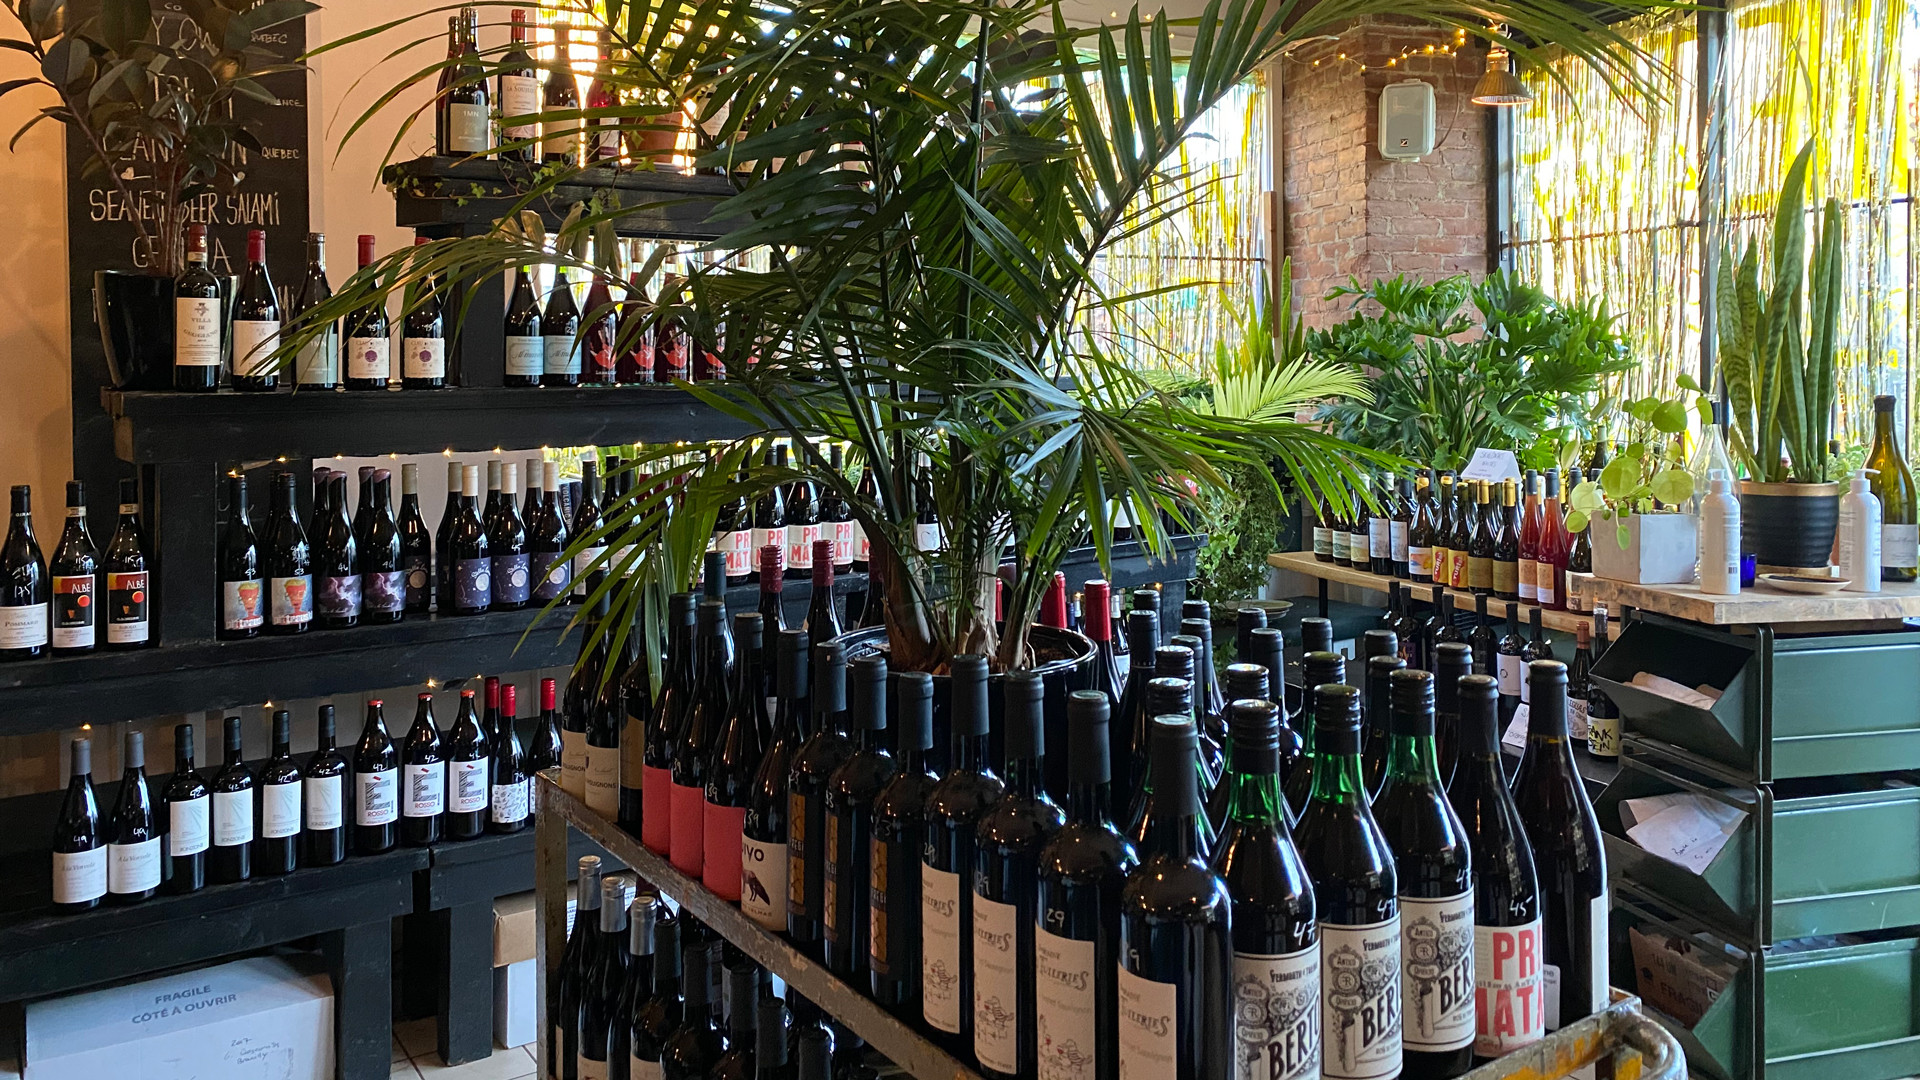 The best bottle shops in Toronto | A wide selection of wine bottles at Midfield wine bar